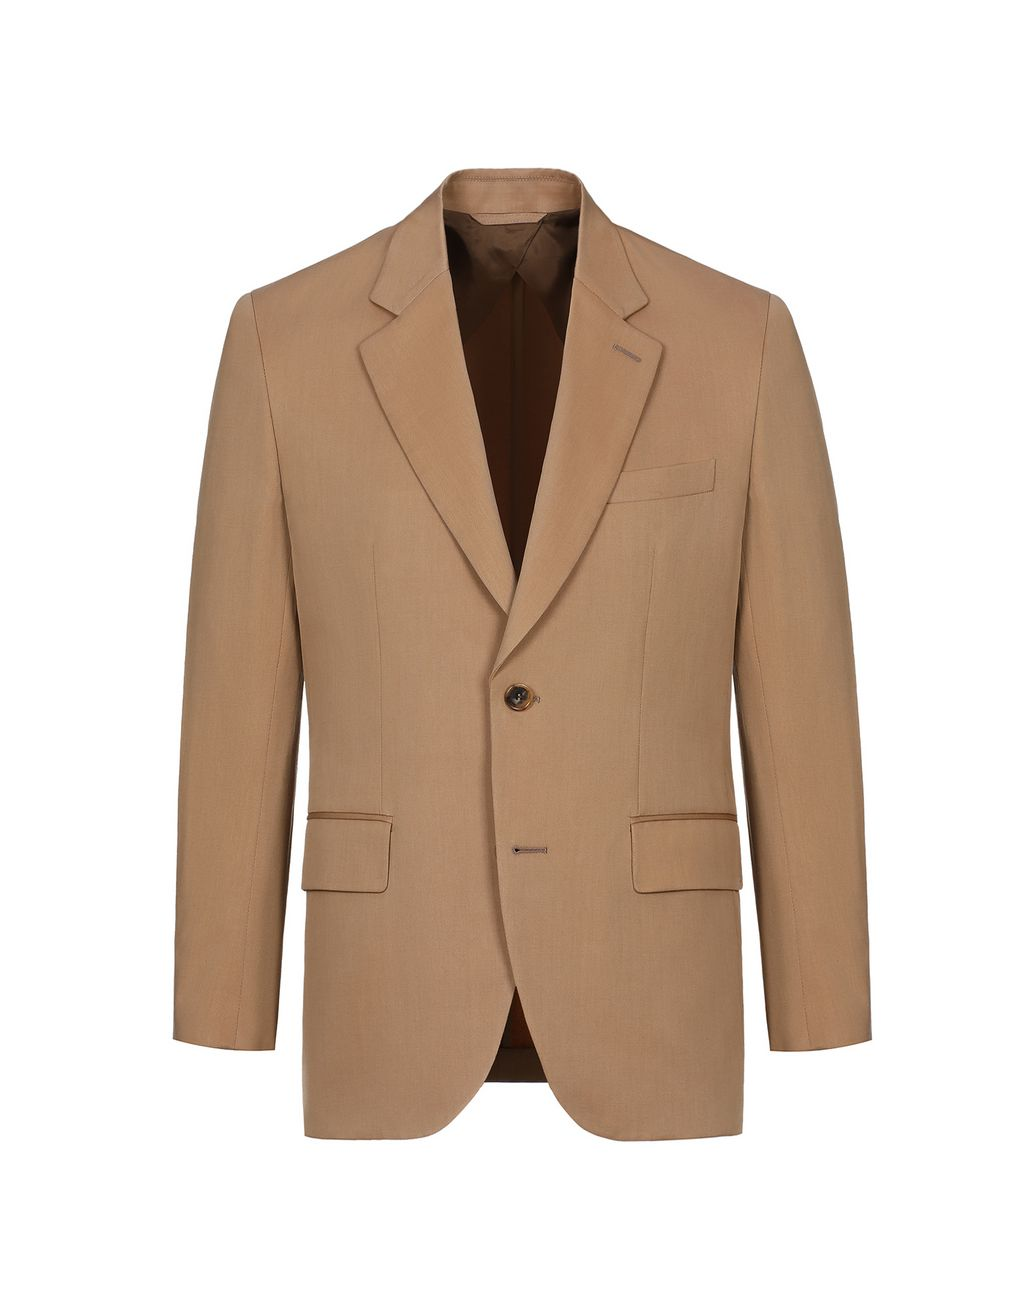 BRIONI Beige Decostructed Jacket Jackets Man f